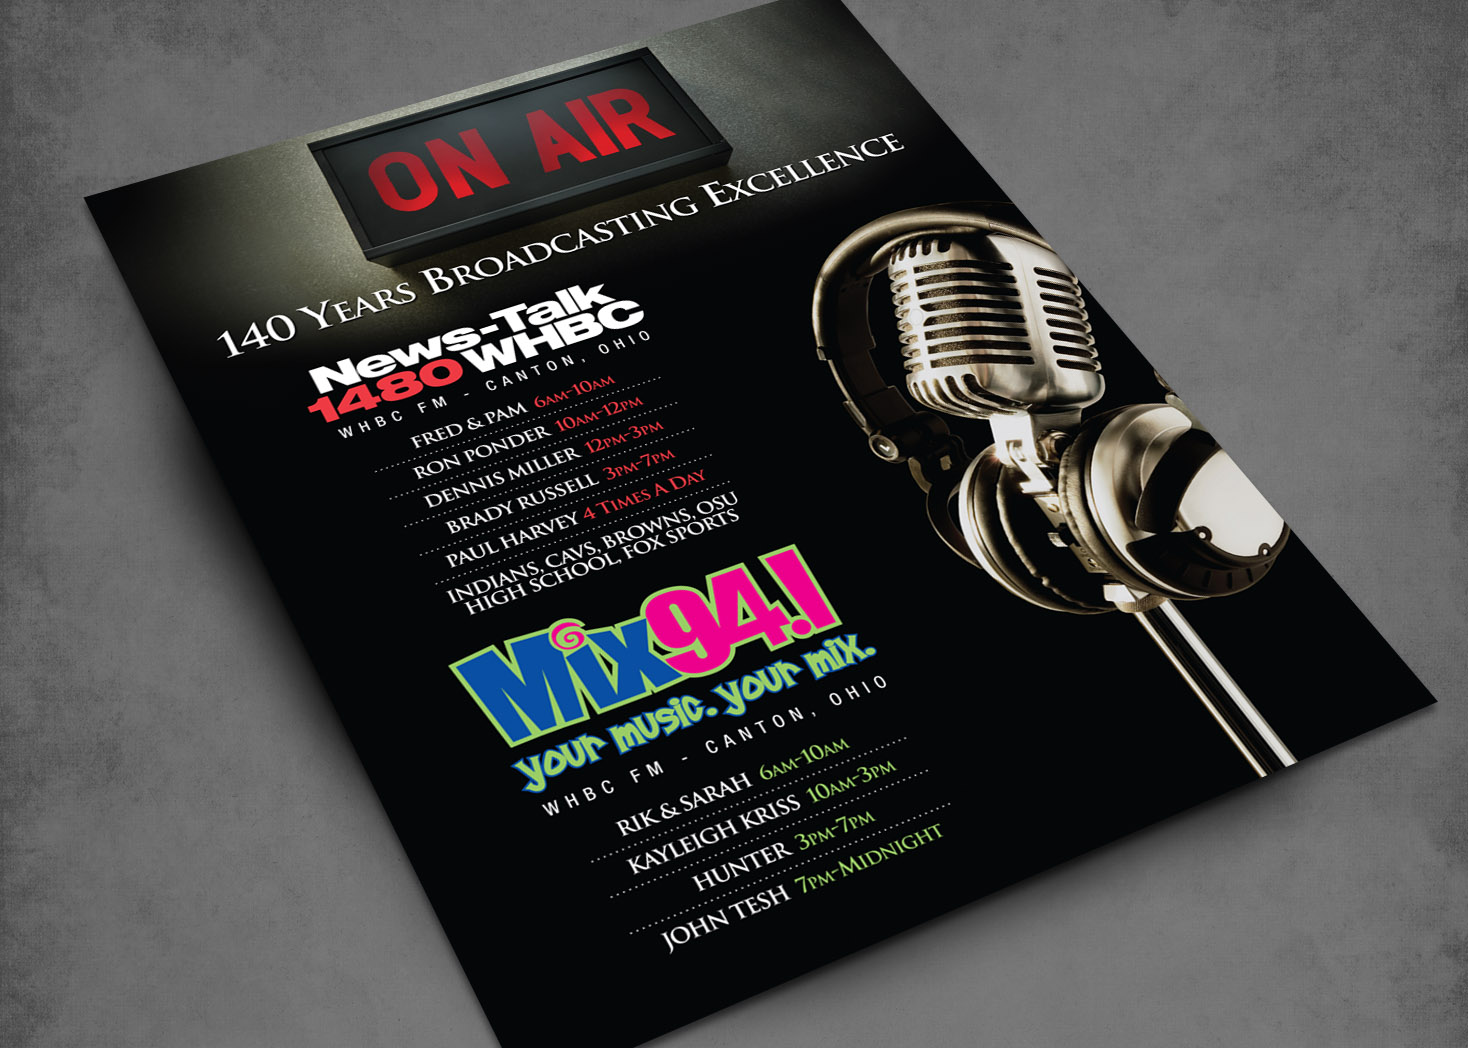 WHBC and Mix 94.1 Radio - Magazine Ad - Lehman Design